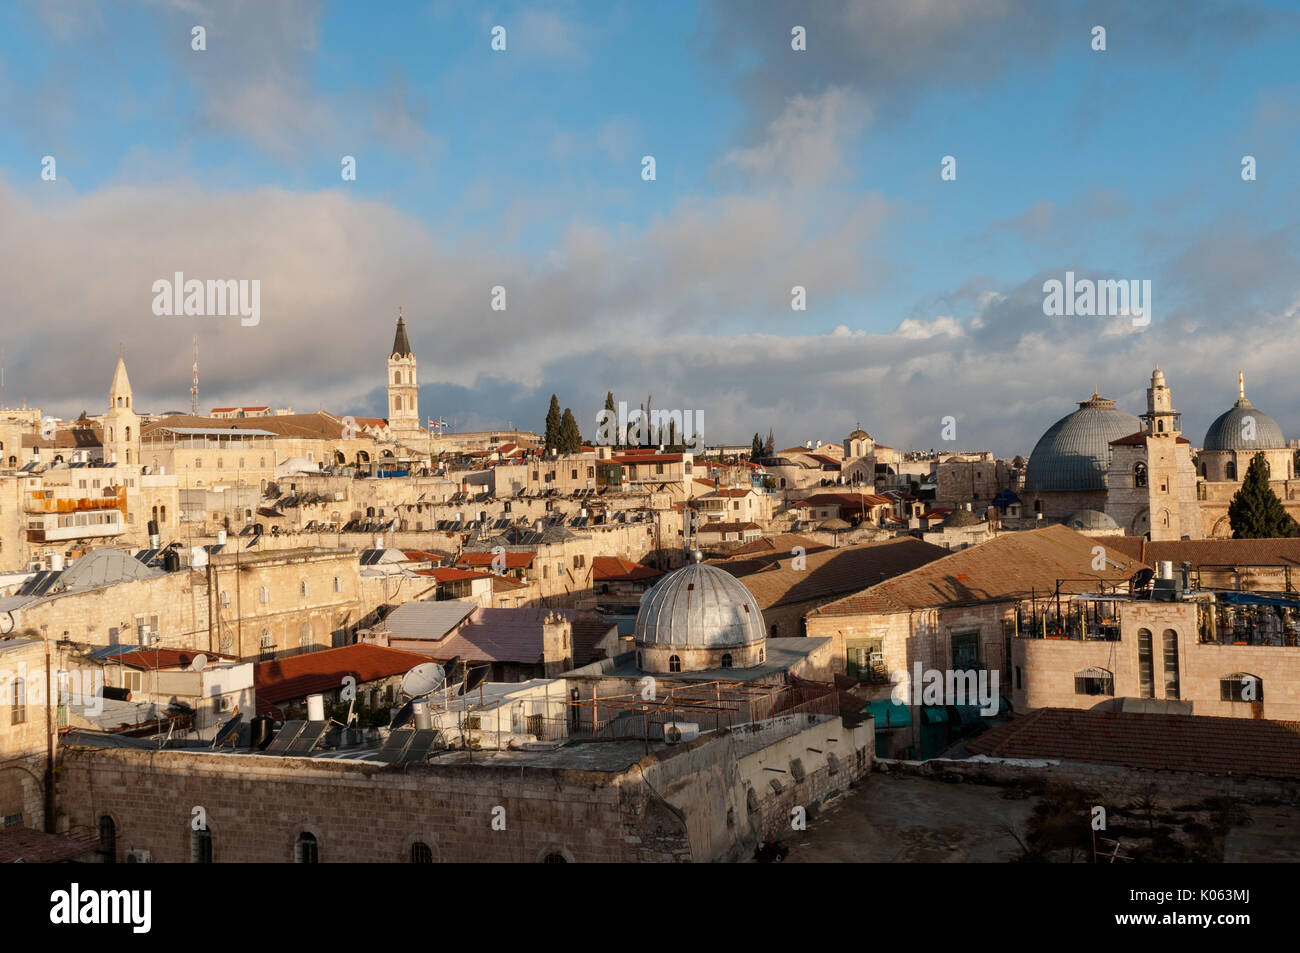 The Jerusalem's Old City Christian Quarter with major Christian sites: the Church of the Holy Sepulchre (R) and the Church of John the Baptist (C). - Stock Image